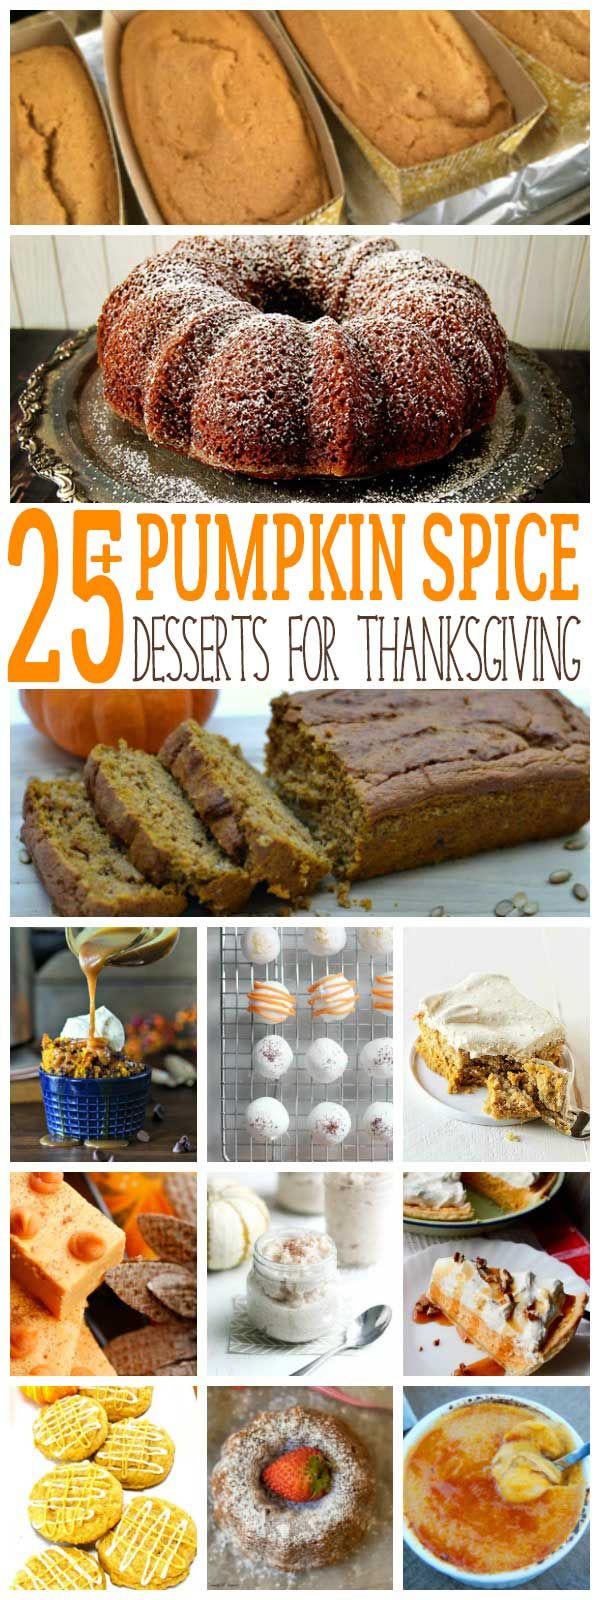 Get stocked up on Pumpkin Spice and Puree: these delicious dessert recipes will inspire you to bake and help you meal plan for Thanksgiving and fall. #pumpkinspice #desserts #Thanksgivingrecipes #Recipes #Baking #Pumpkinpie #dessertrecipes via @rainydaymum {The Usual Mayhem contributor post}